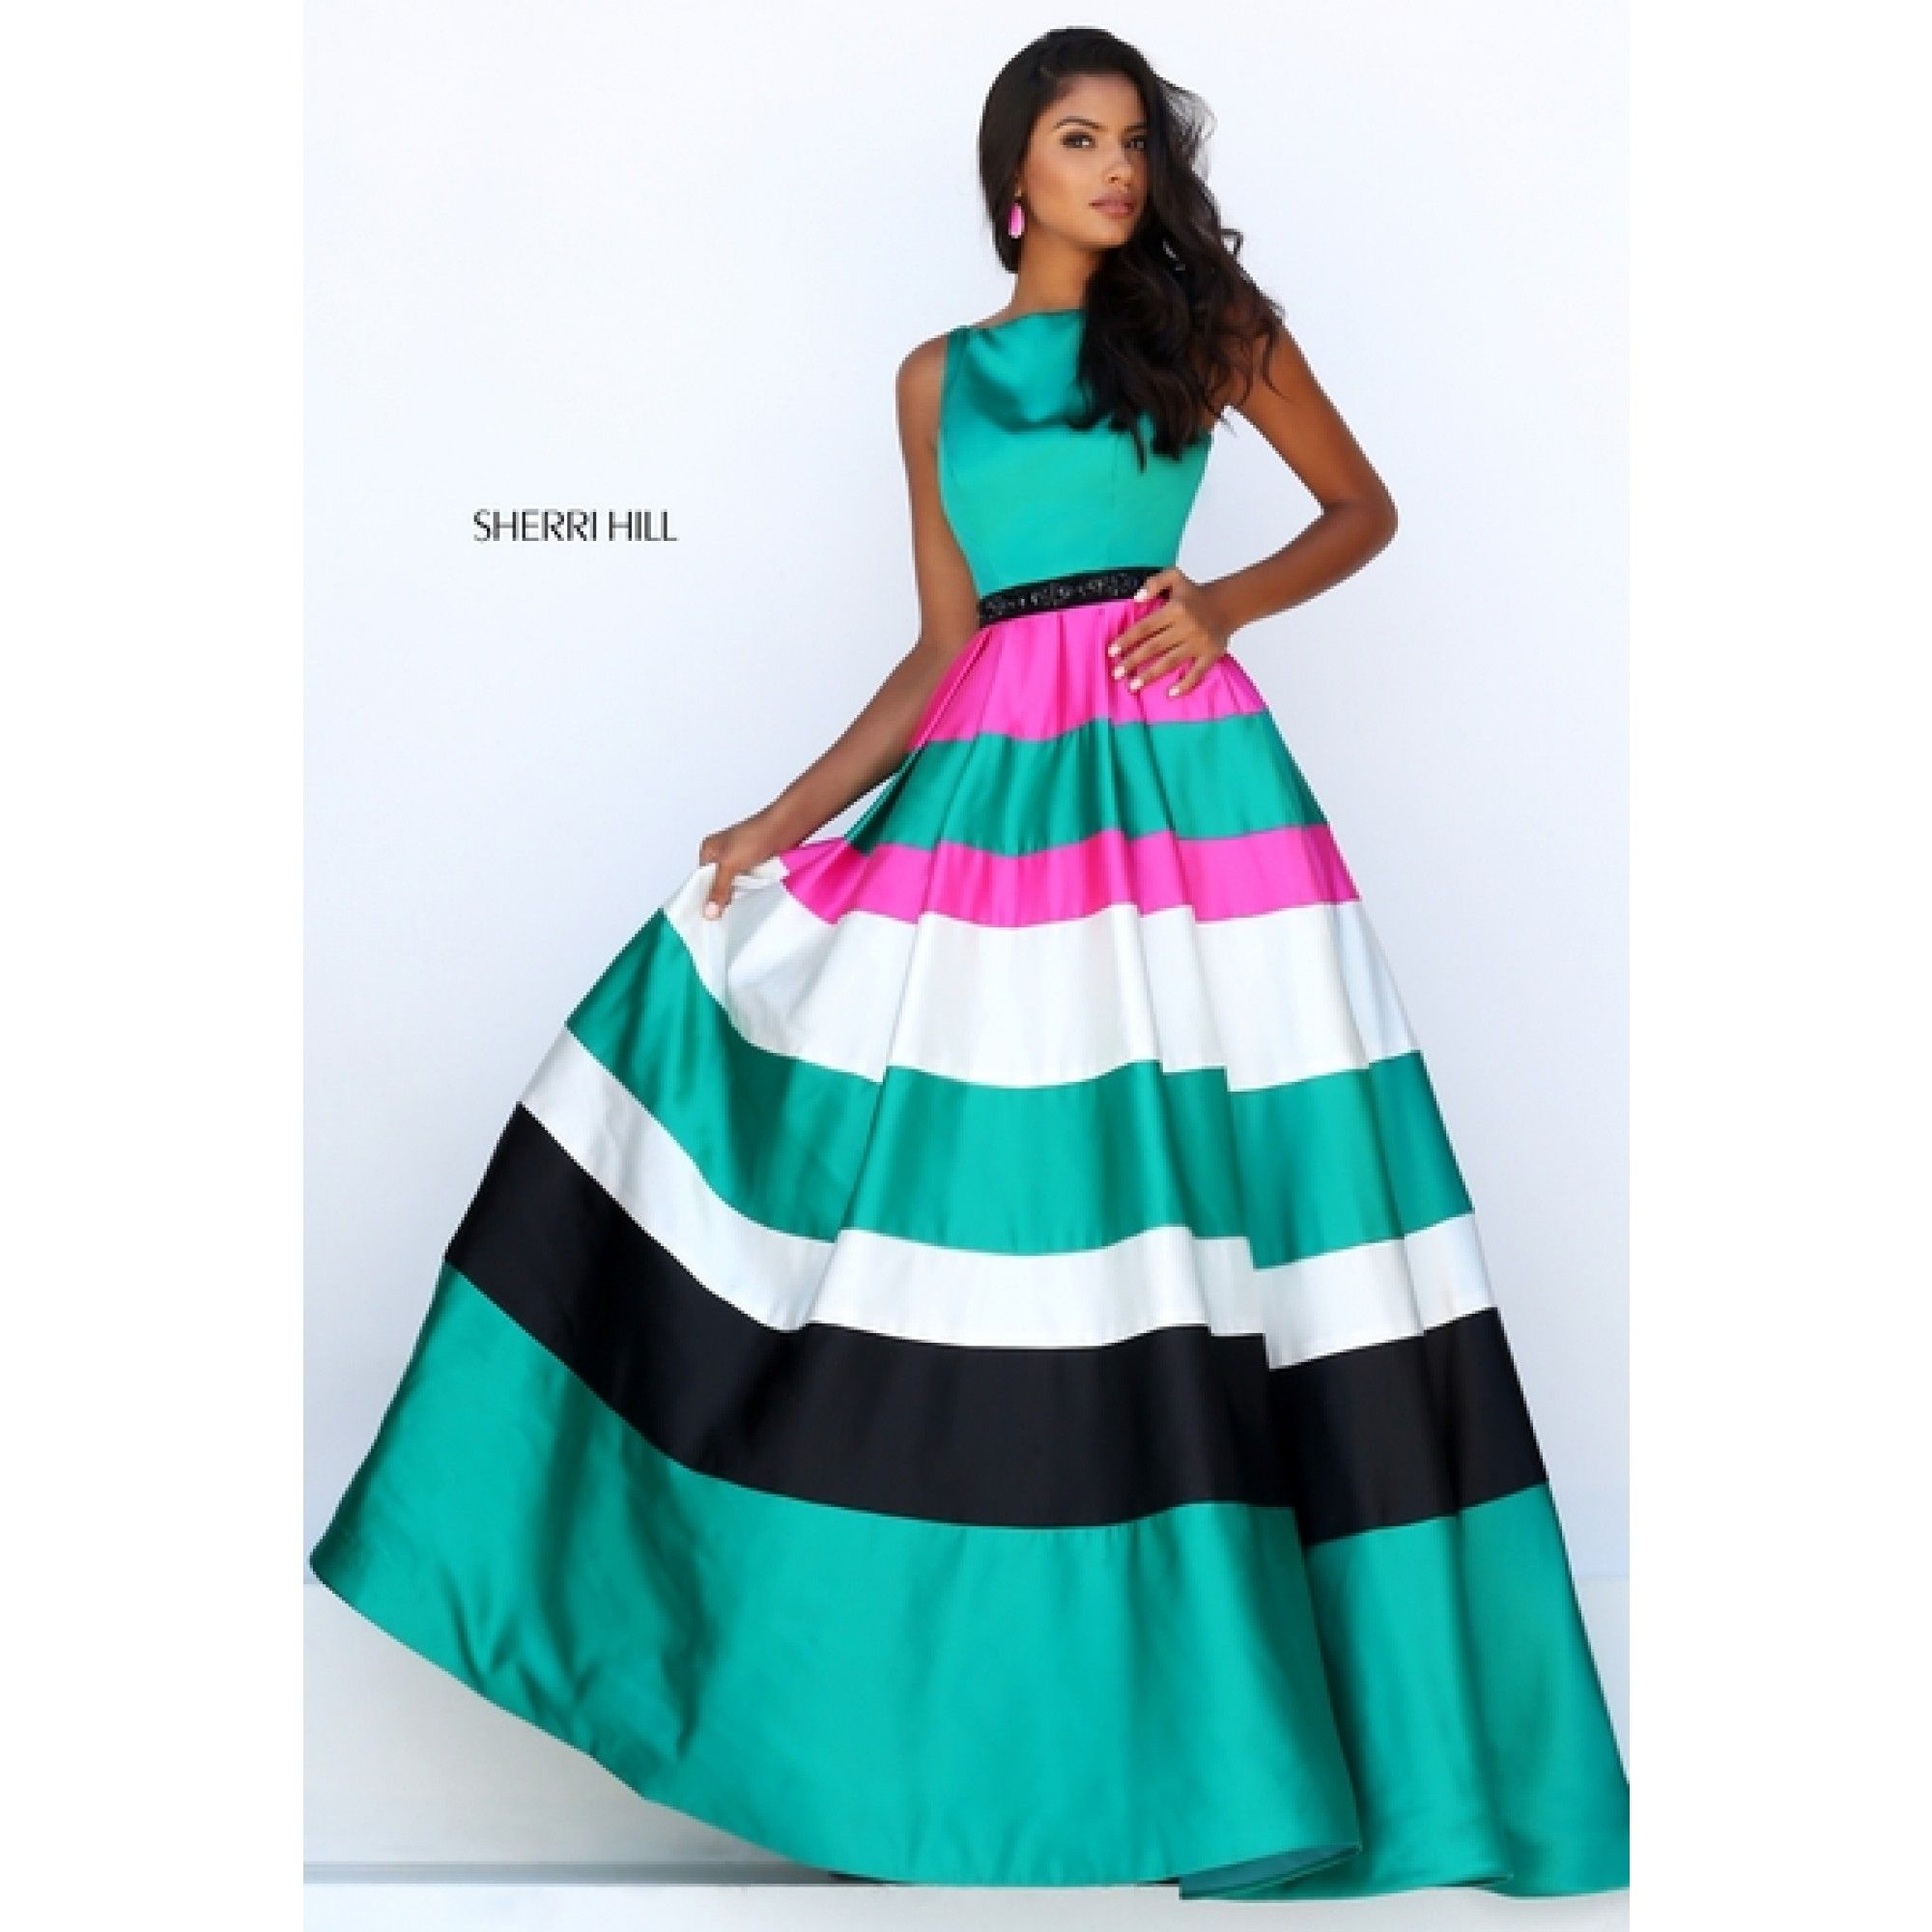 Sherri hill sherri hill prom dress tampabridalshops